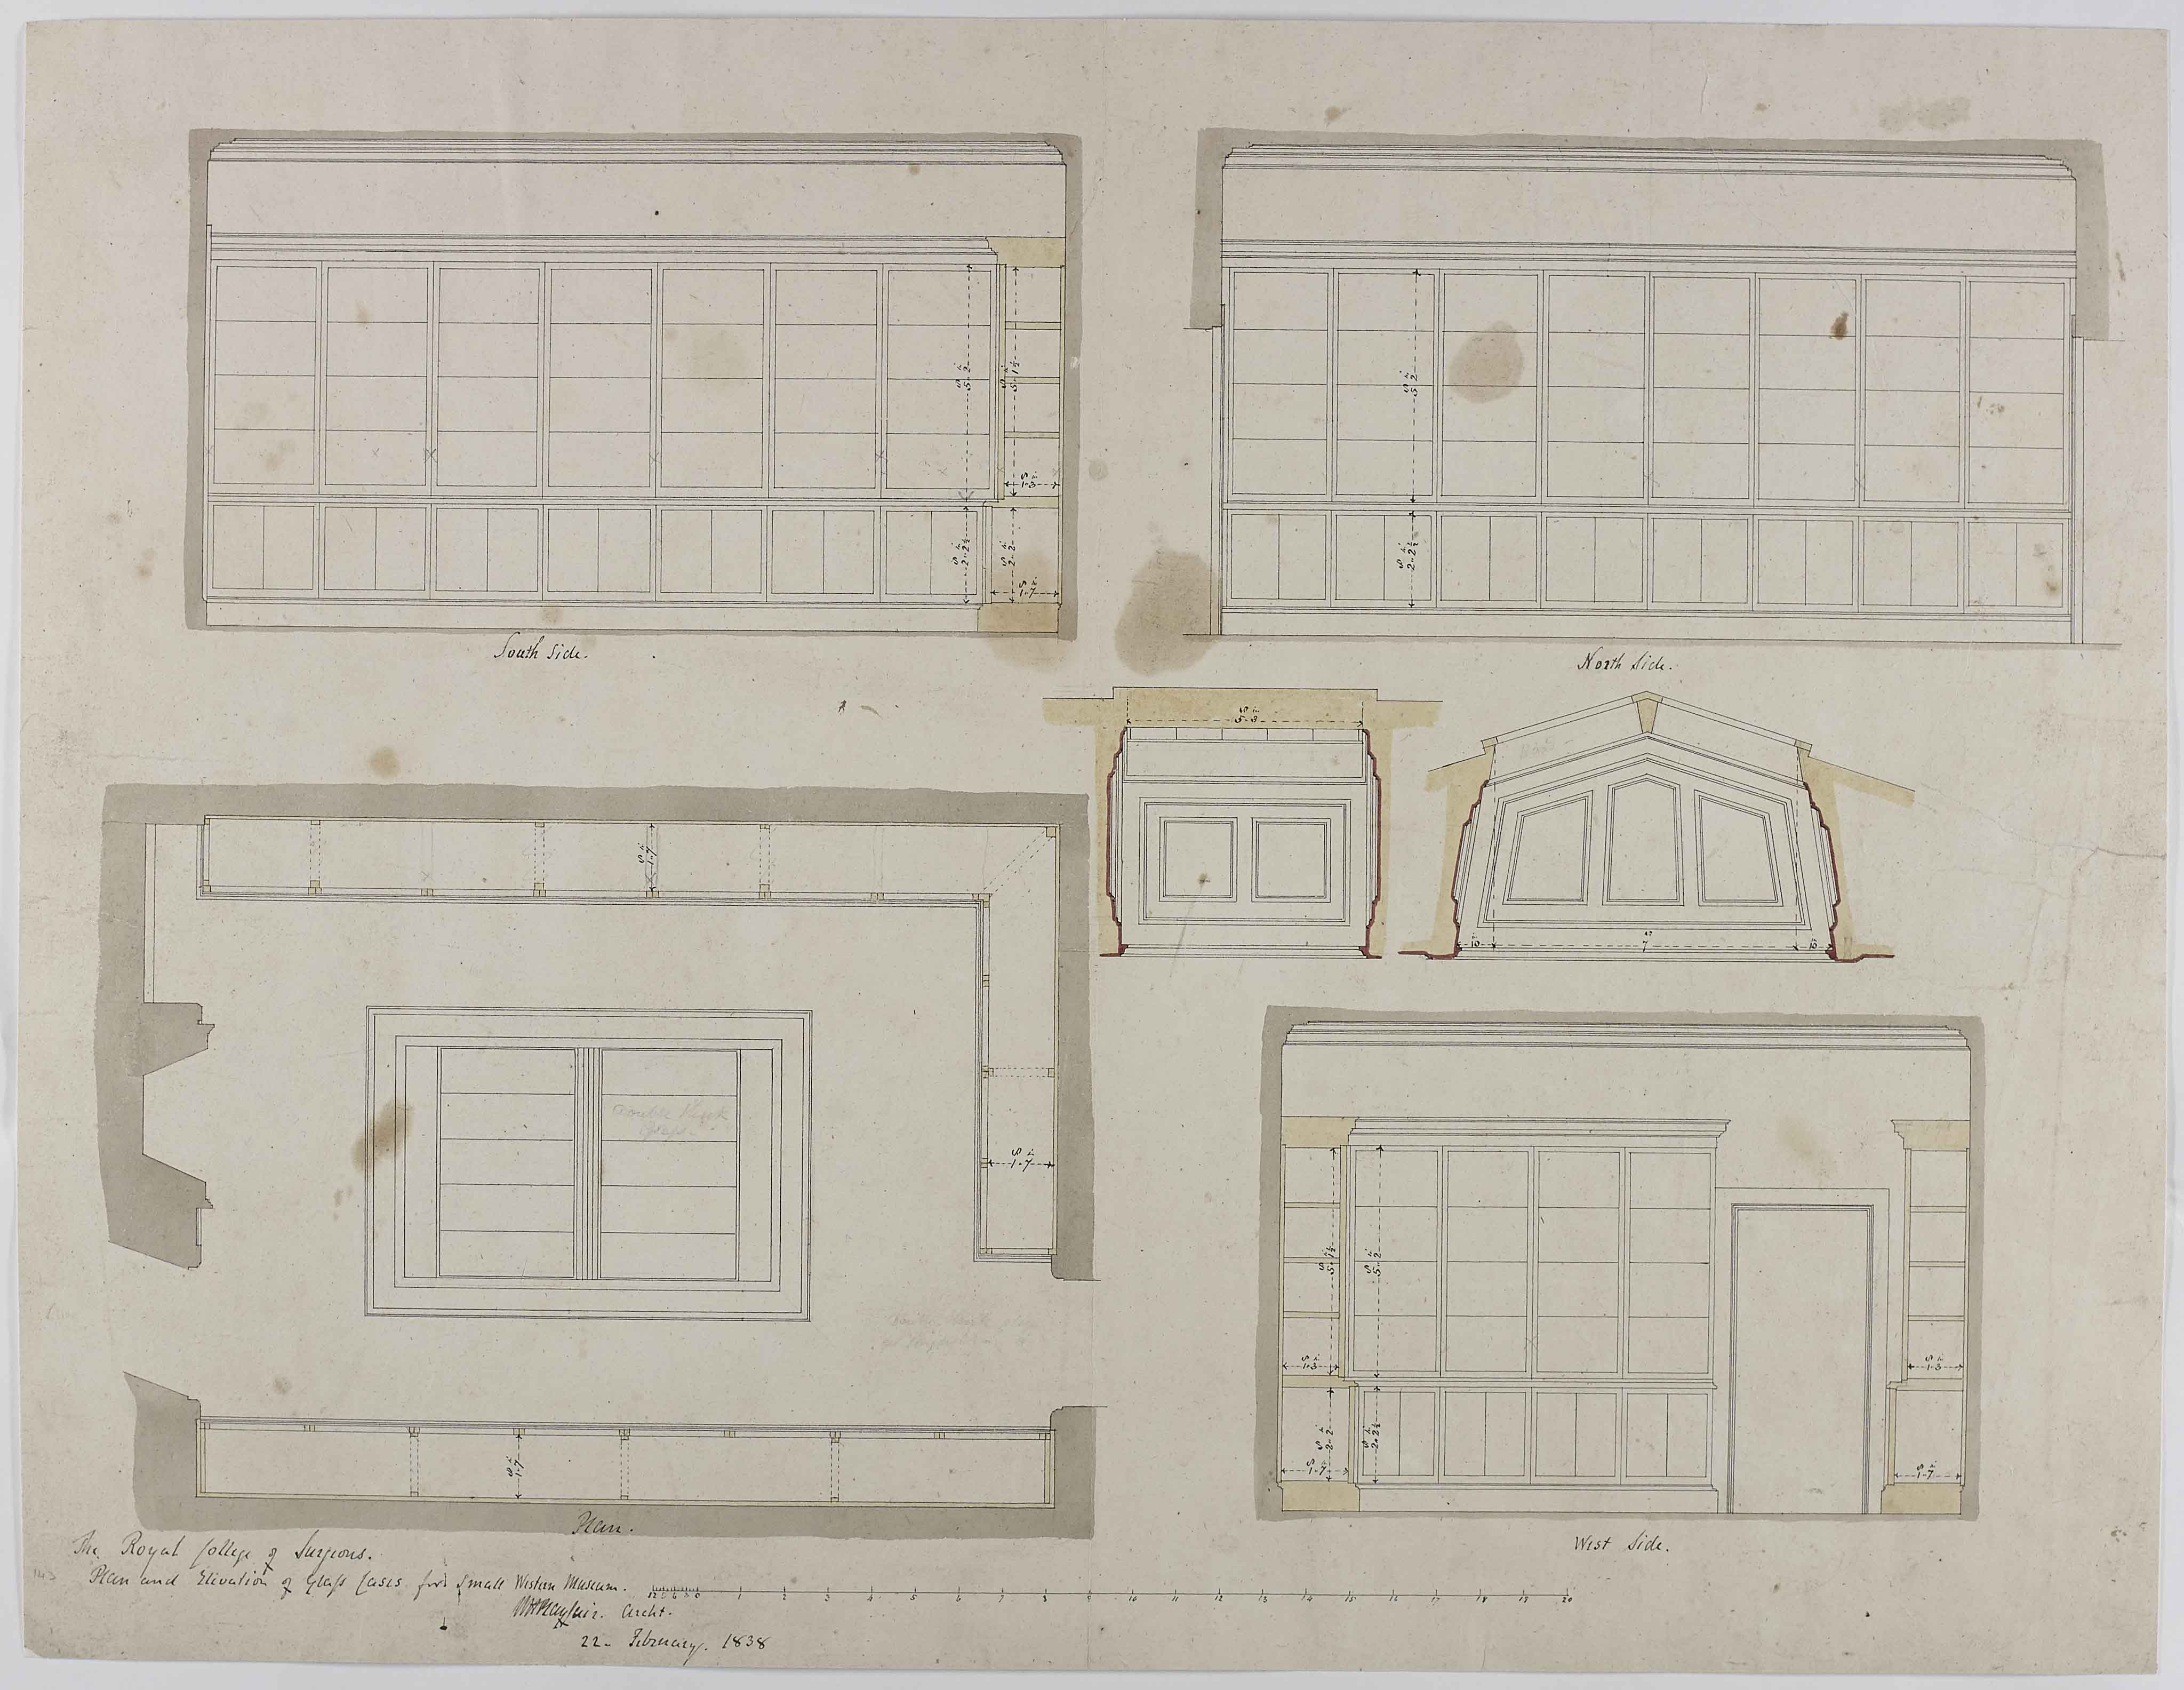 William Henry Playfair\'s Architectural Plans of RCSEd, Nicolson ...